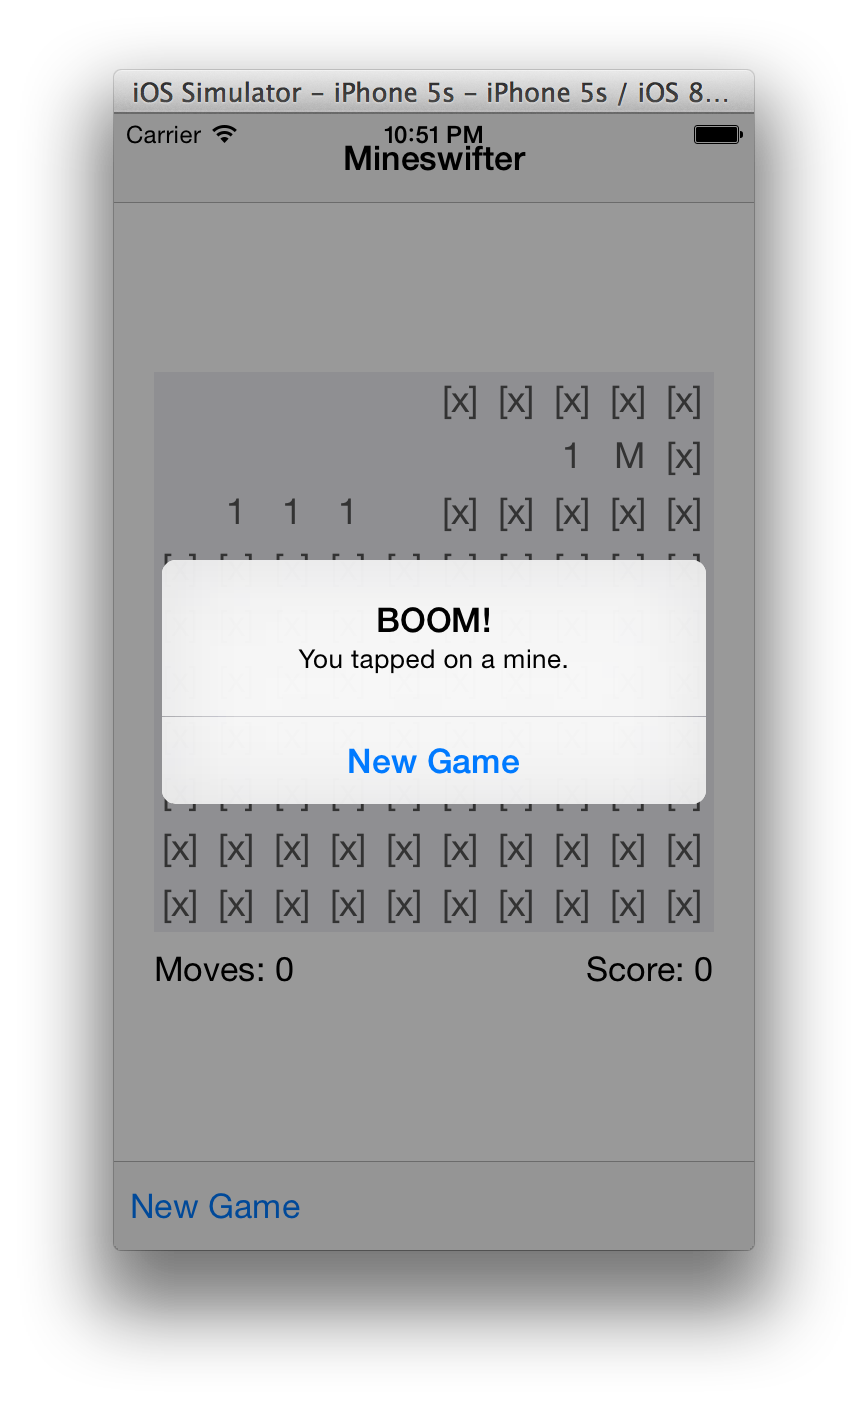 Modal with new game prompt